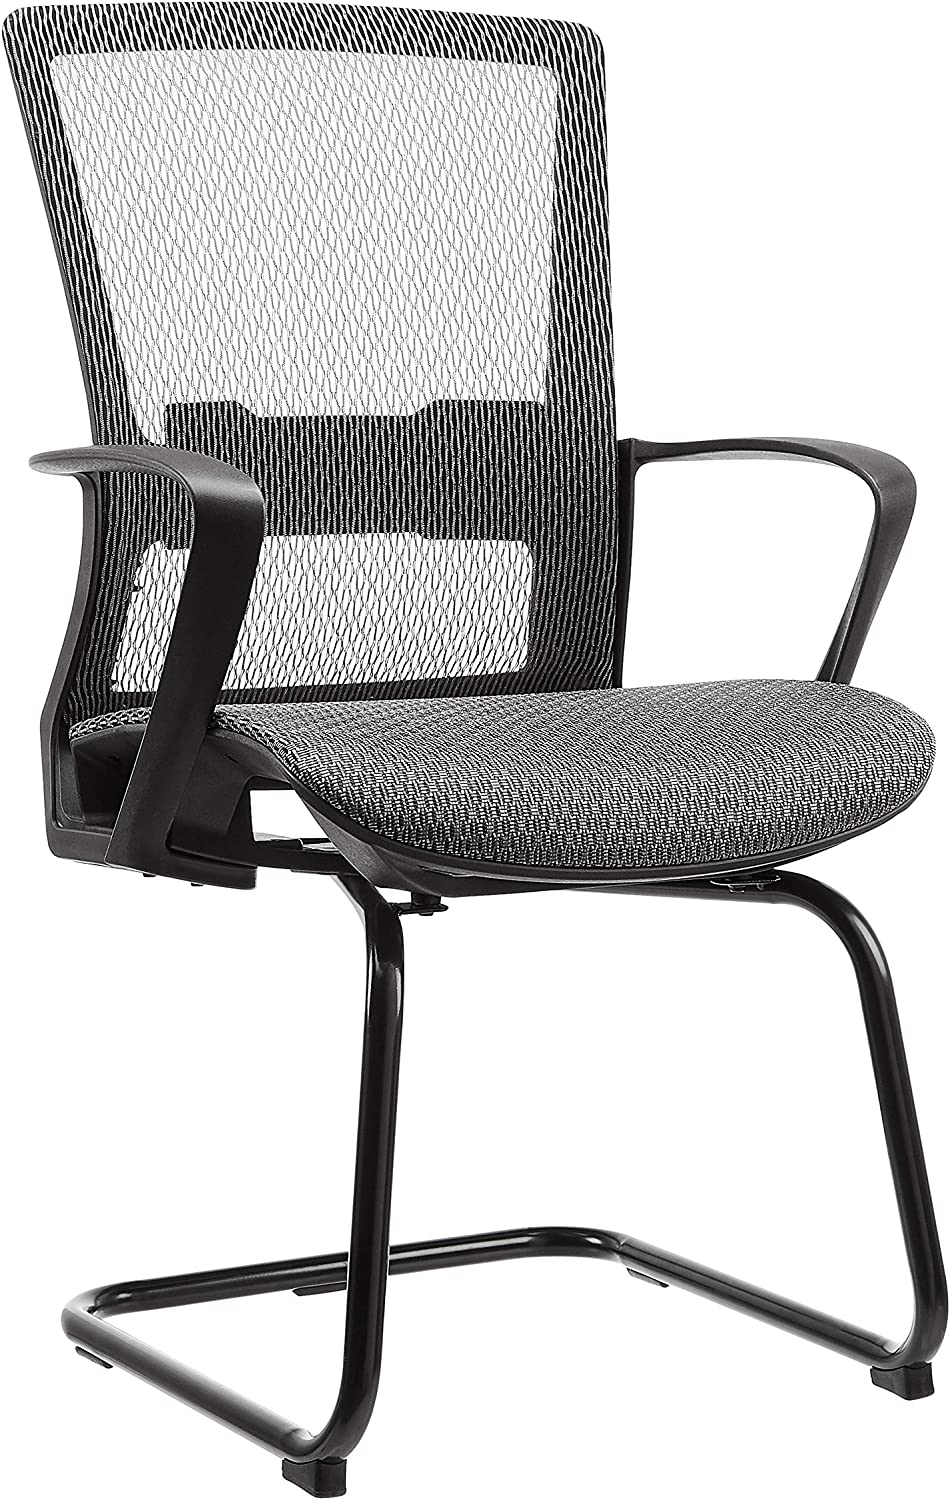 AmazonBasics Mid-Back Guest/Reception Chair, with Contoured Mesh Seat – Grey